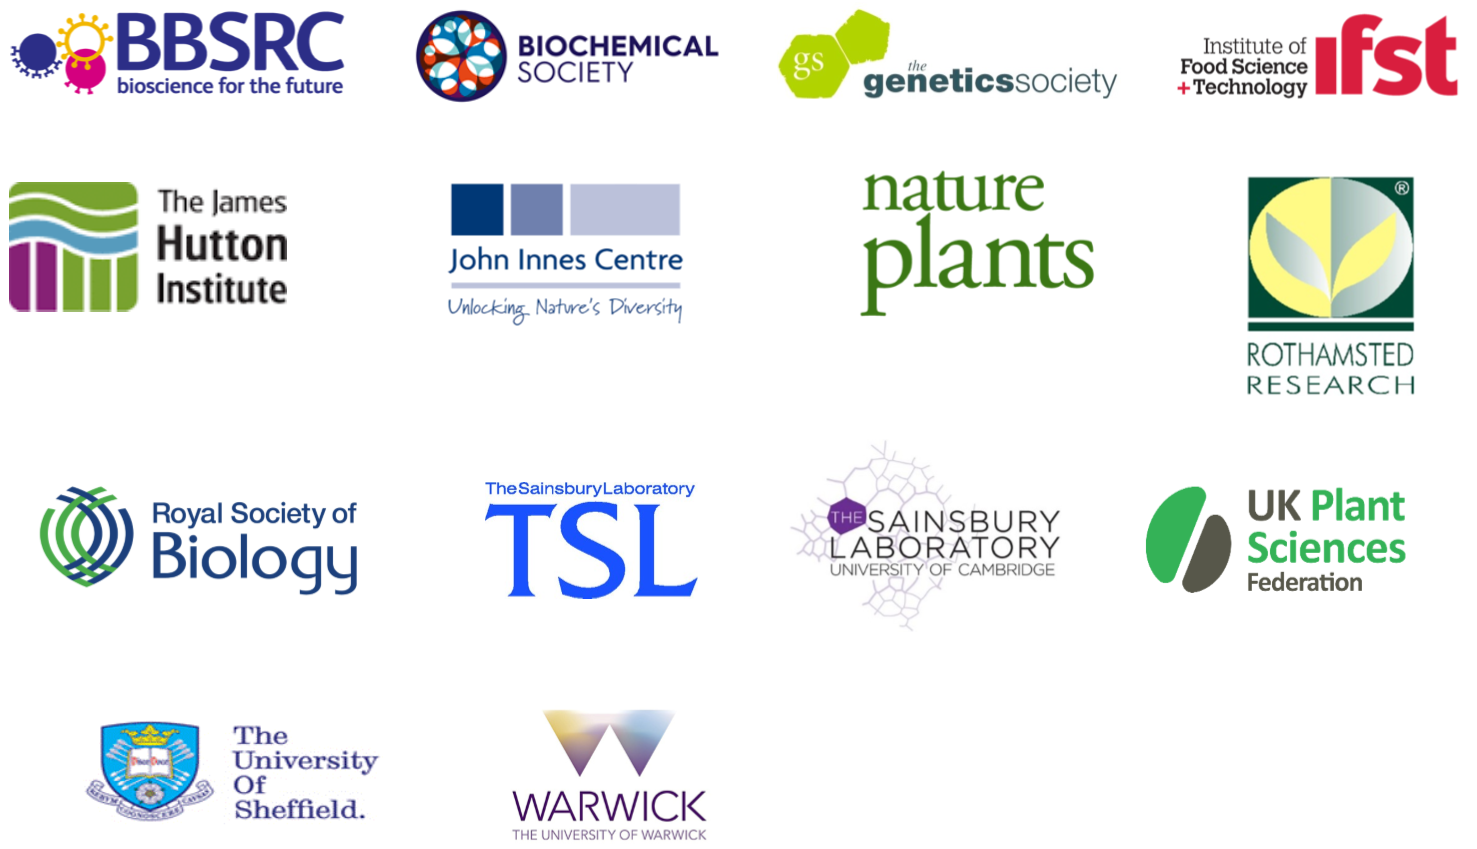 Plant science panel partners 2017: BBSRC, Biochemical Society, Genetics Society, IFST, The James Hutton Institute, The John Innes Centre, Nature Plants, Rothamsted Research, Royal Society of Biology, TSL, The Sainsbury Laboratory University of Cambridge, UK plant science federation, The University of Sheffield, University of Warwick